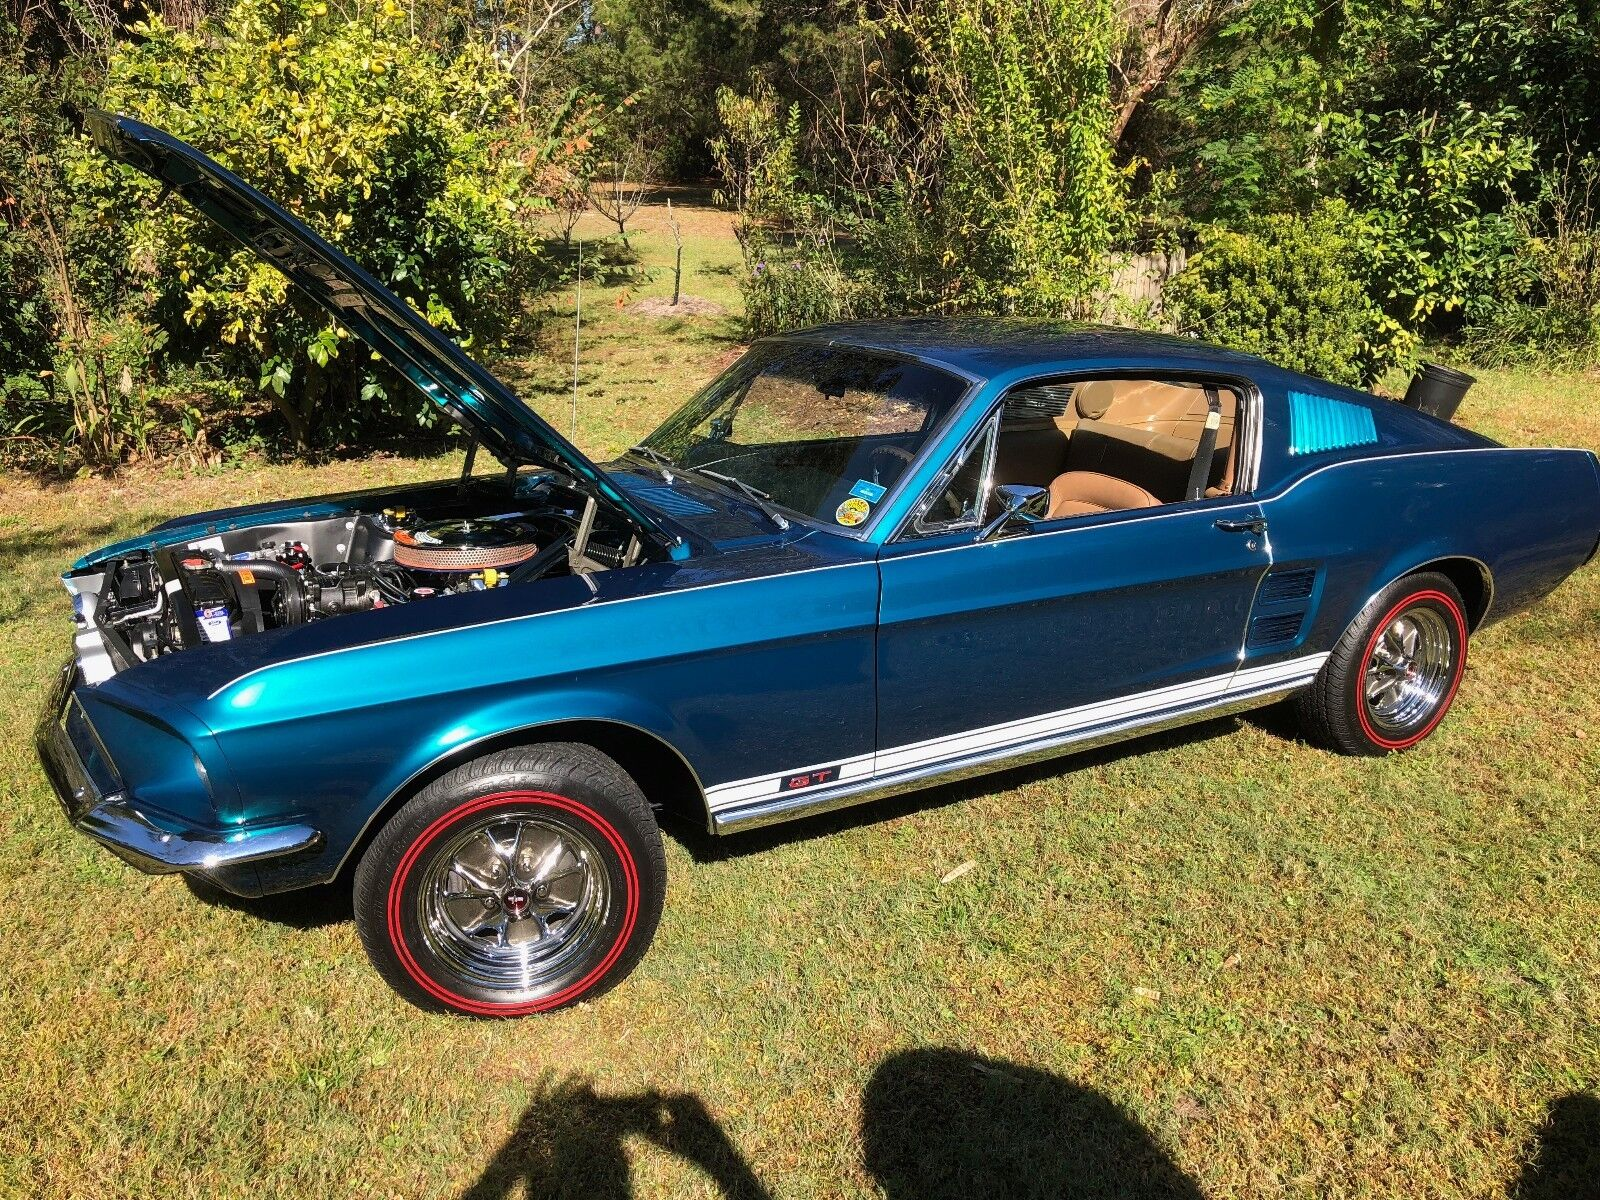 1967 Ford Mustang GT REAL 1967 GT Mustang Fastback A code 4-speed